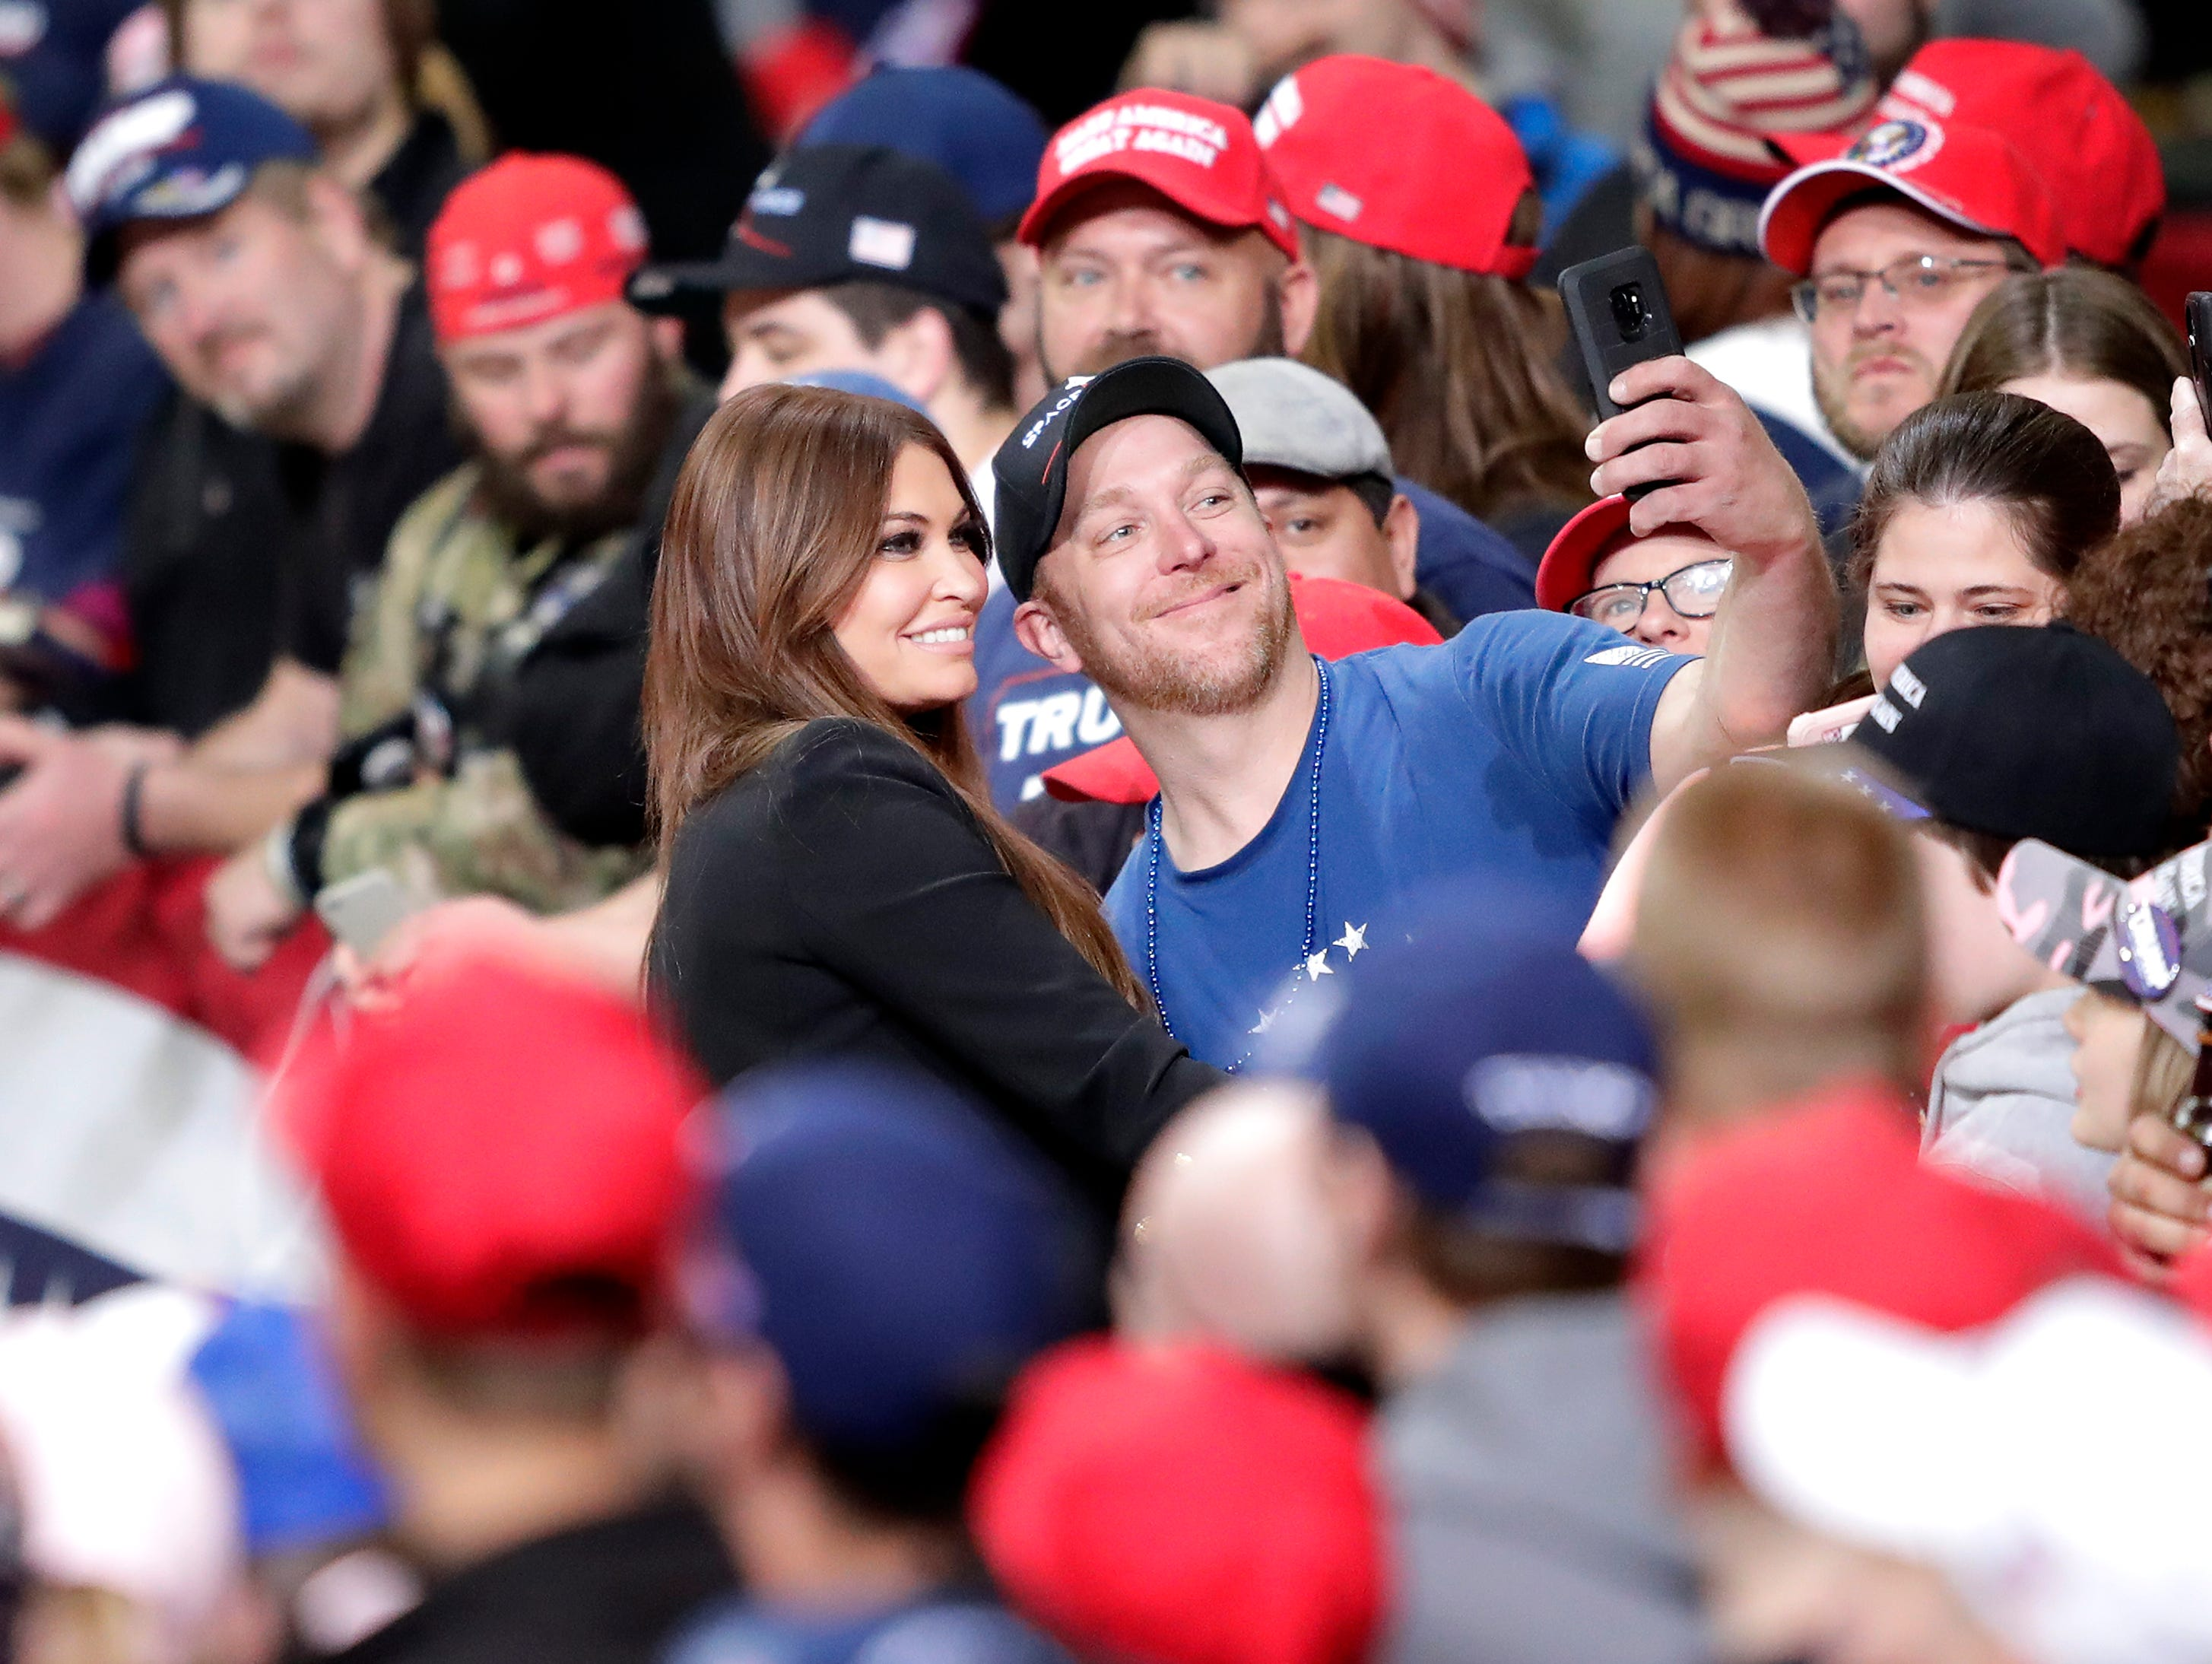 Former Fox News contributor Kimberly Guilfoyle greets supporters before President Donald J. TrumpÕs Make America Great Again Rally on Saturday, April 27, 2019, at the Resch Center in Green Bay, Wis. Wm. Glasheen/USA TODAY NETWORK-Wisconsin.